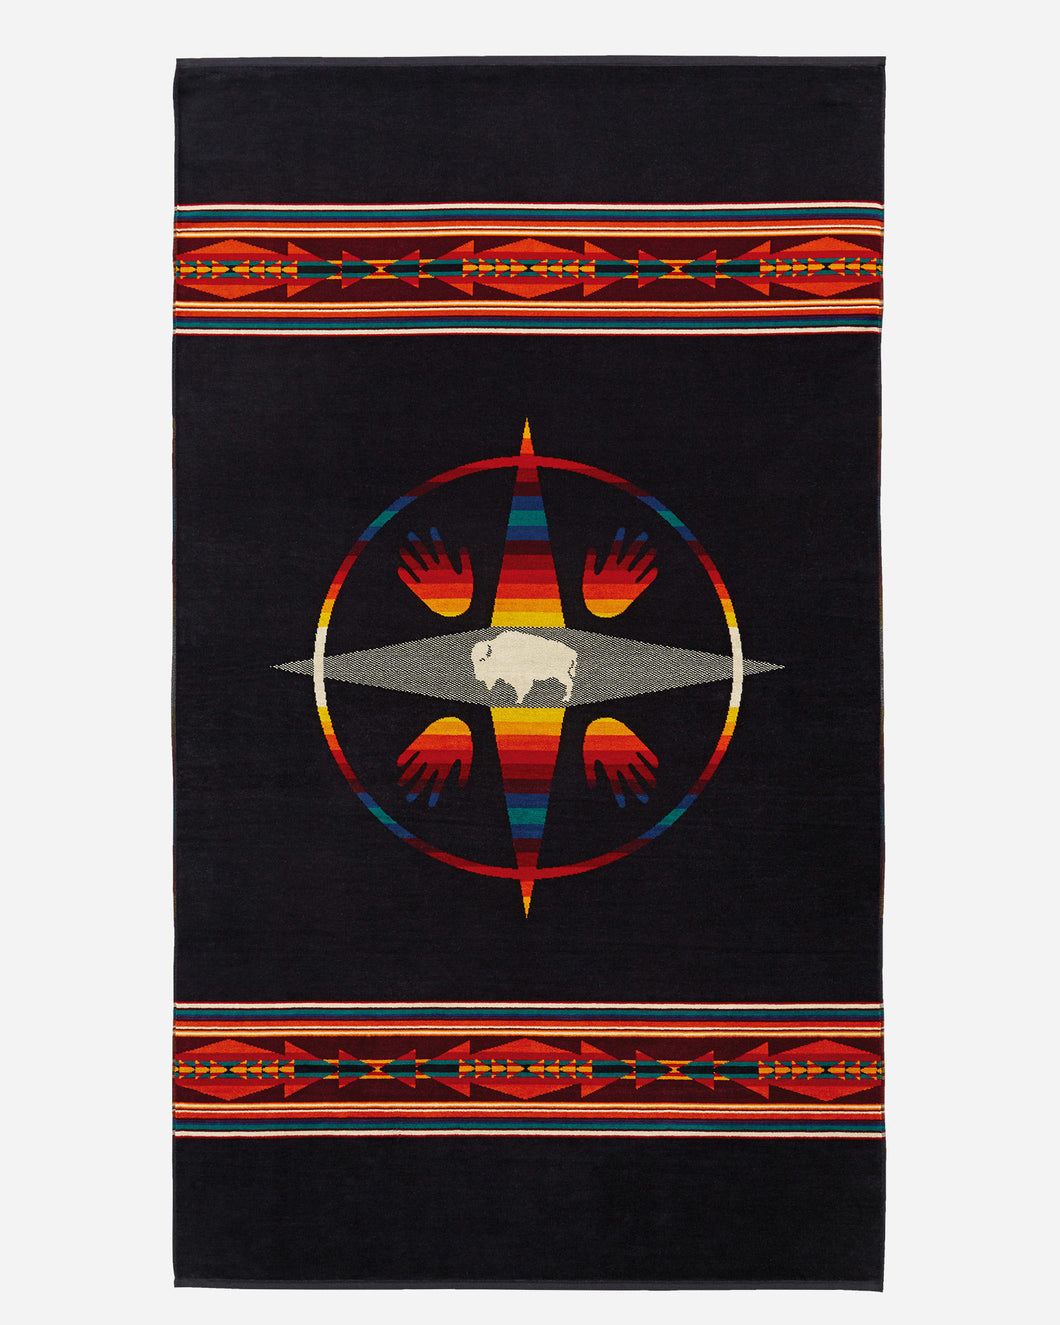 Pendleton towel big medicine white buffalo bison native american art beach cotton